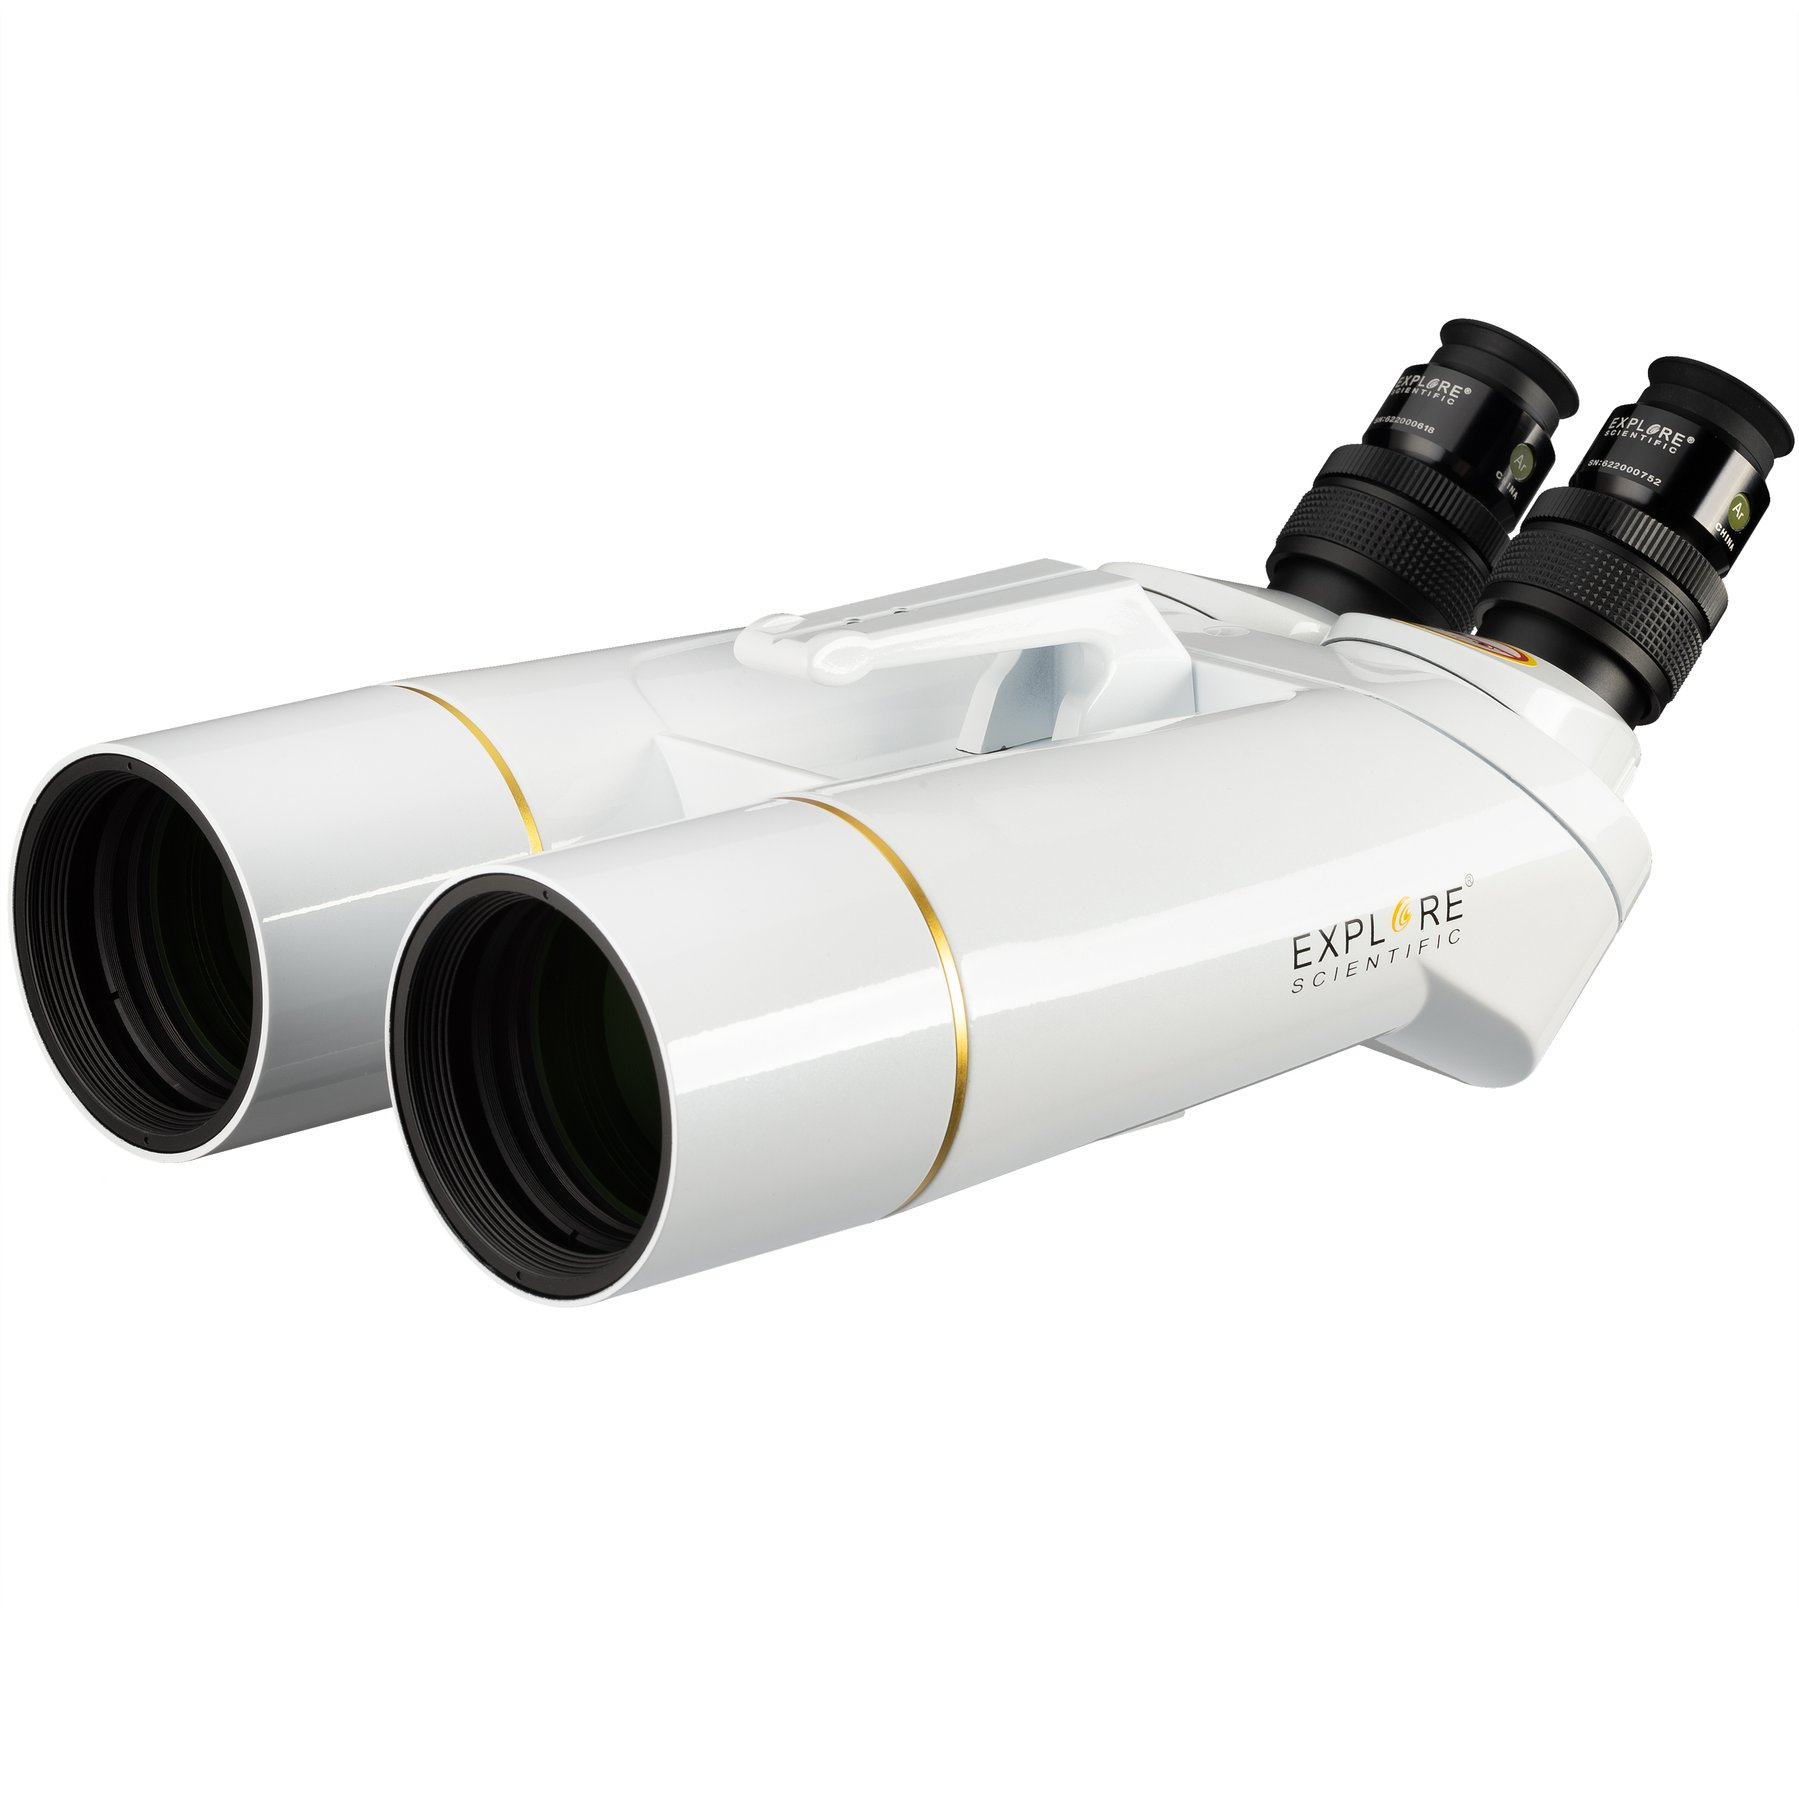 BT-70 SF Large Binoculars with 62 Degree LER Eyepieces